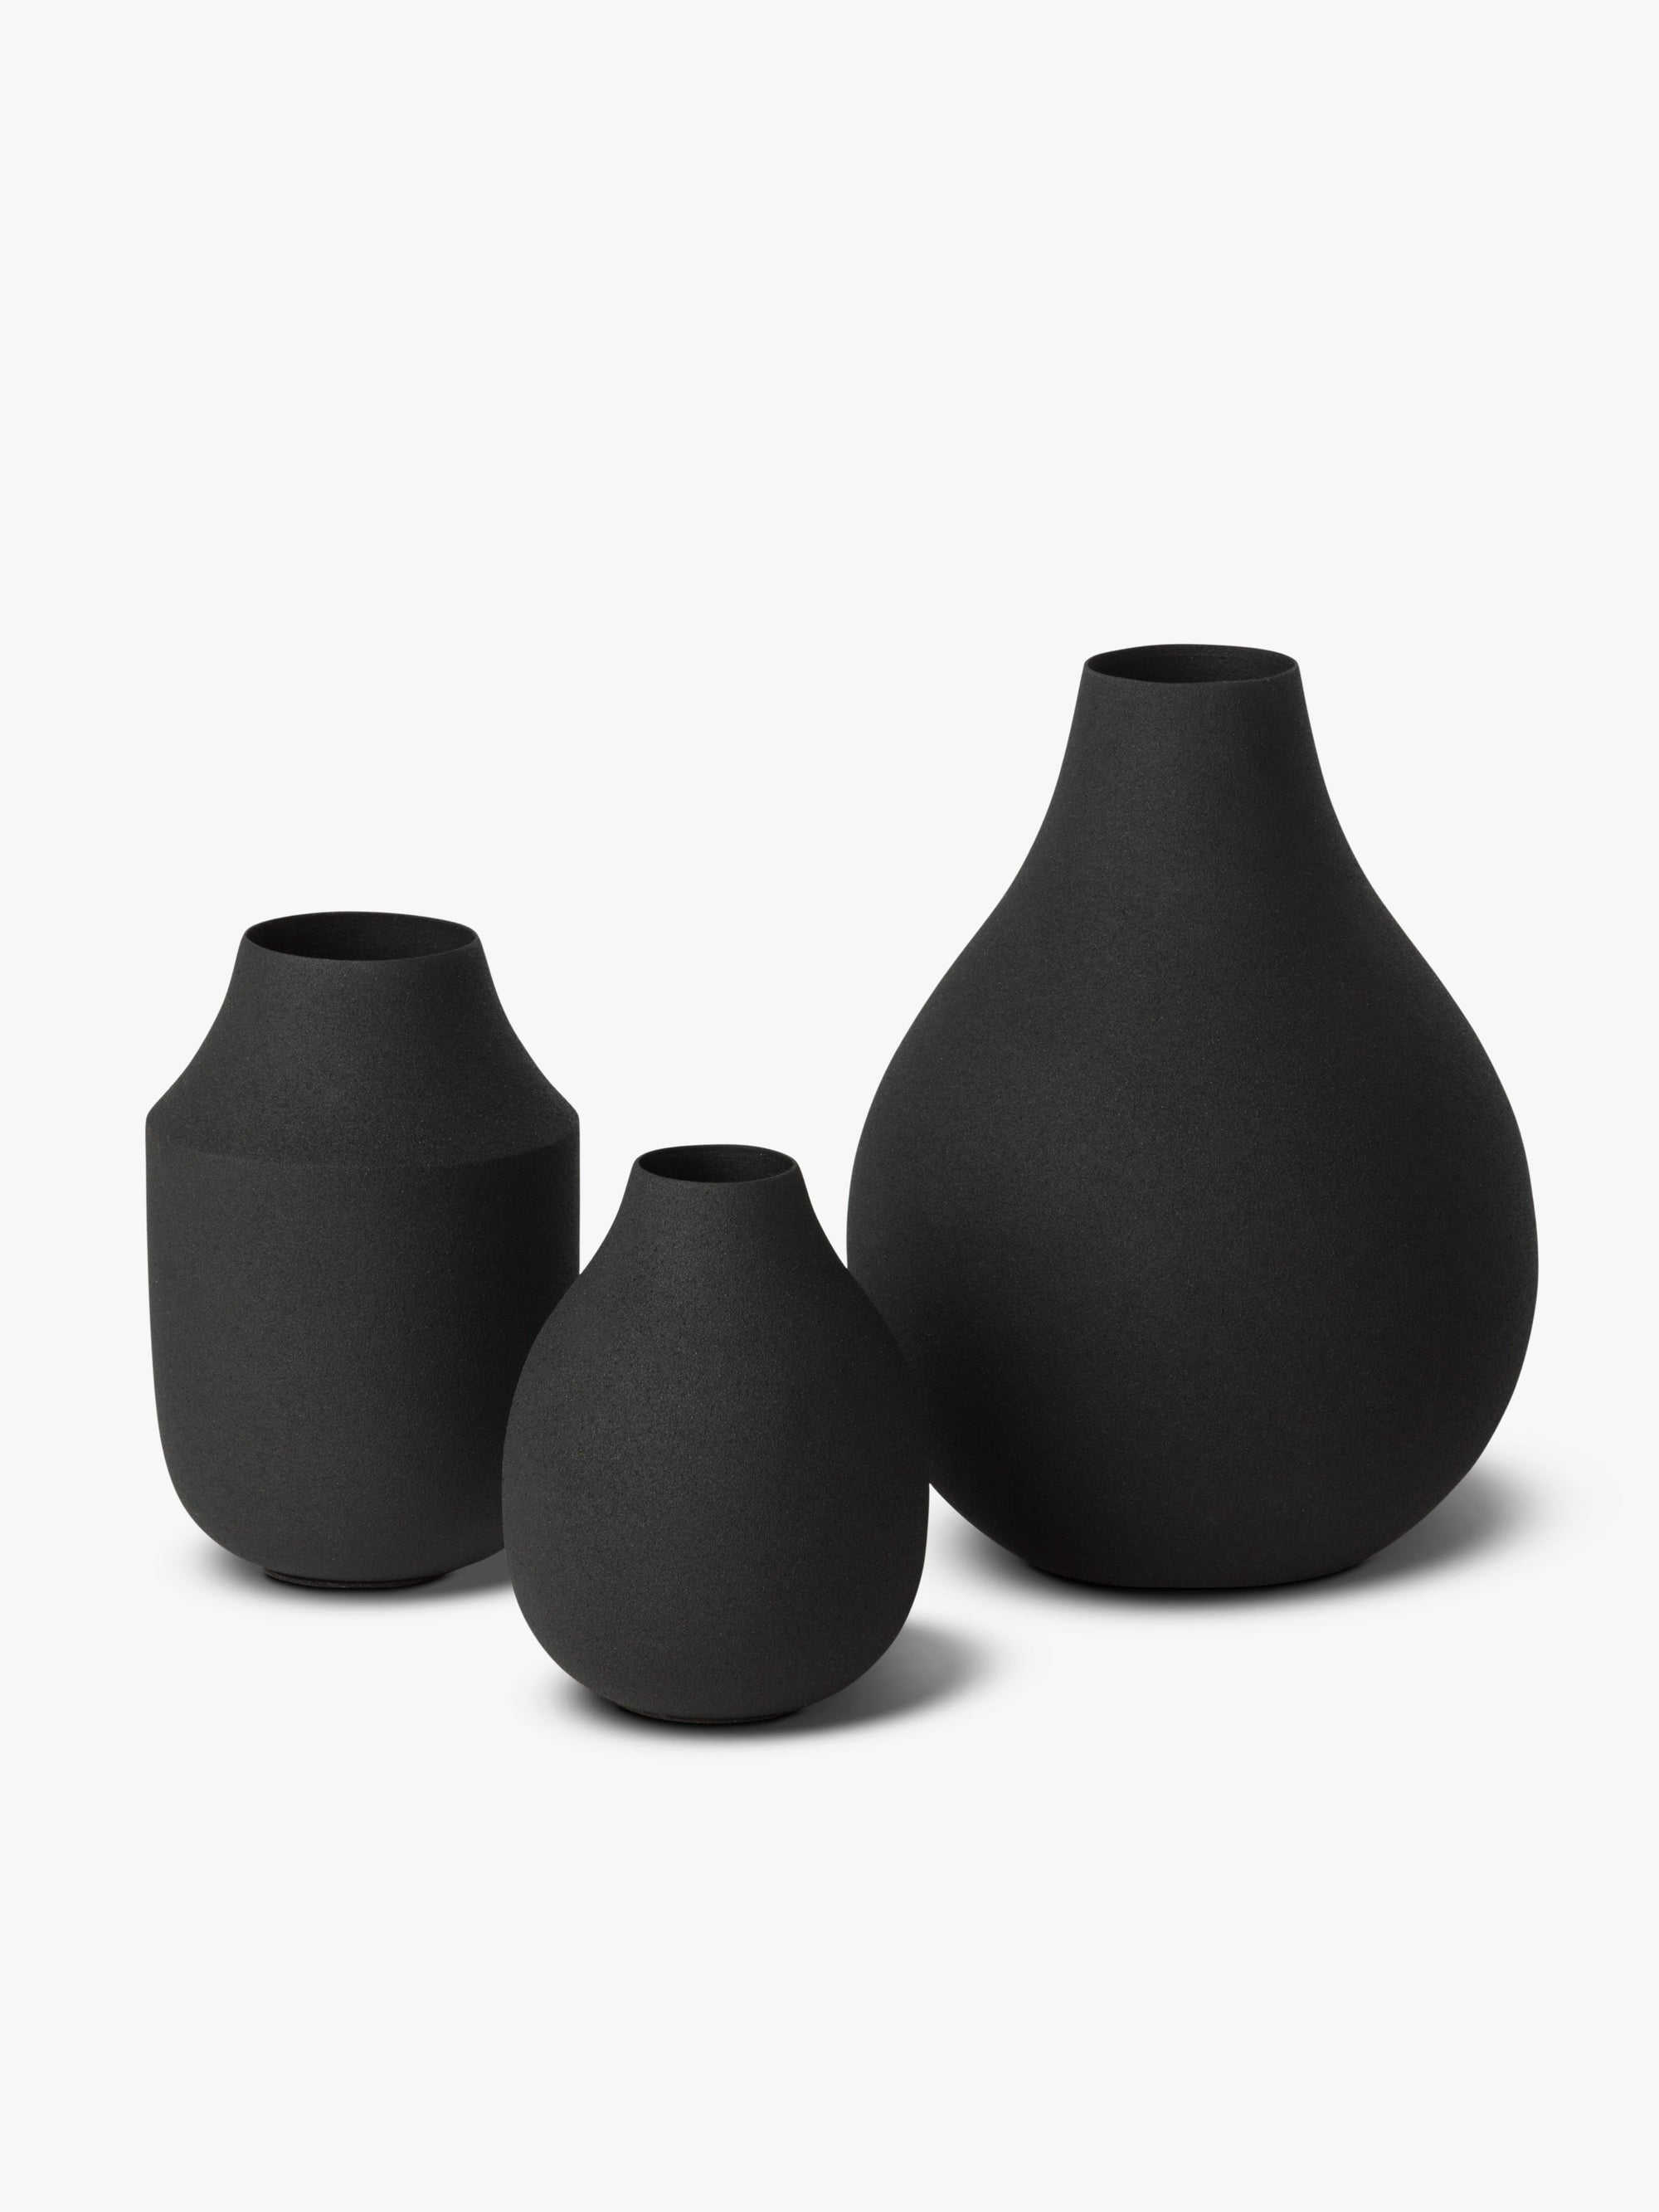 Mona Trio of Vases - Black Vase Winter 19